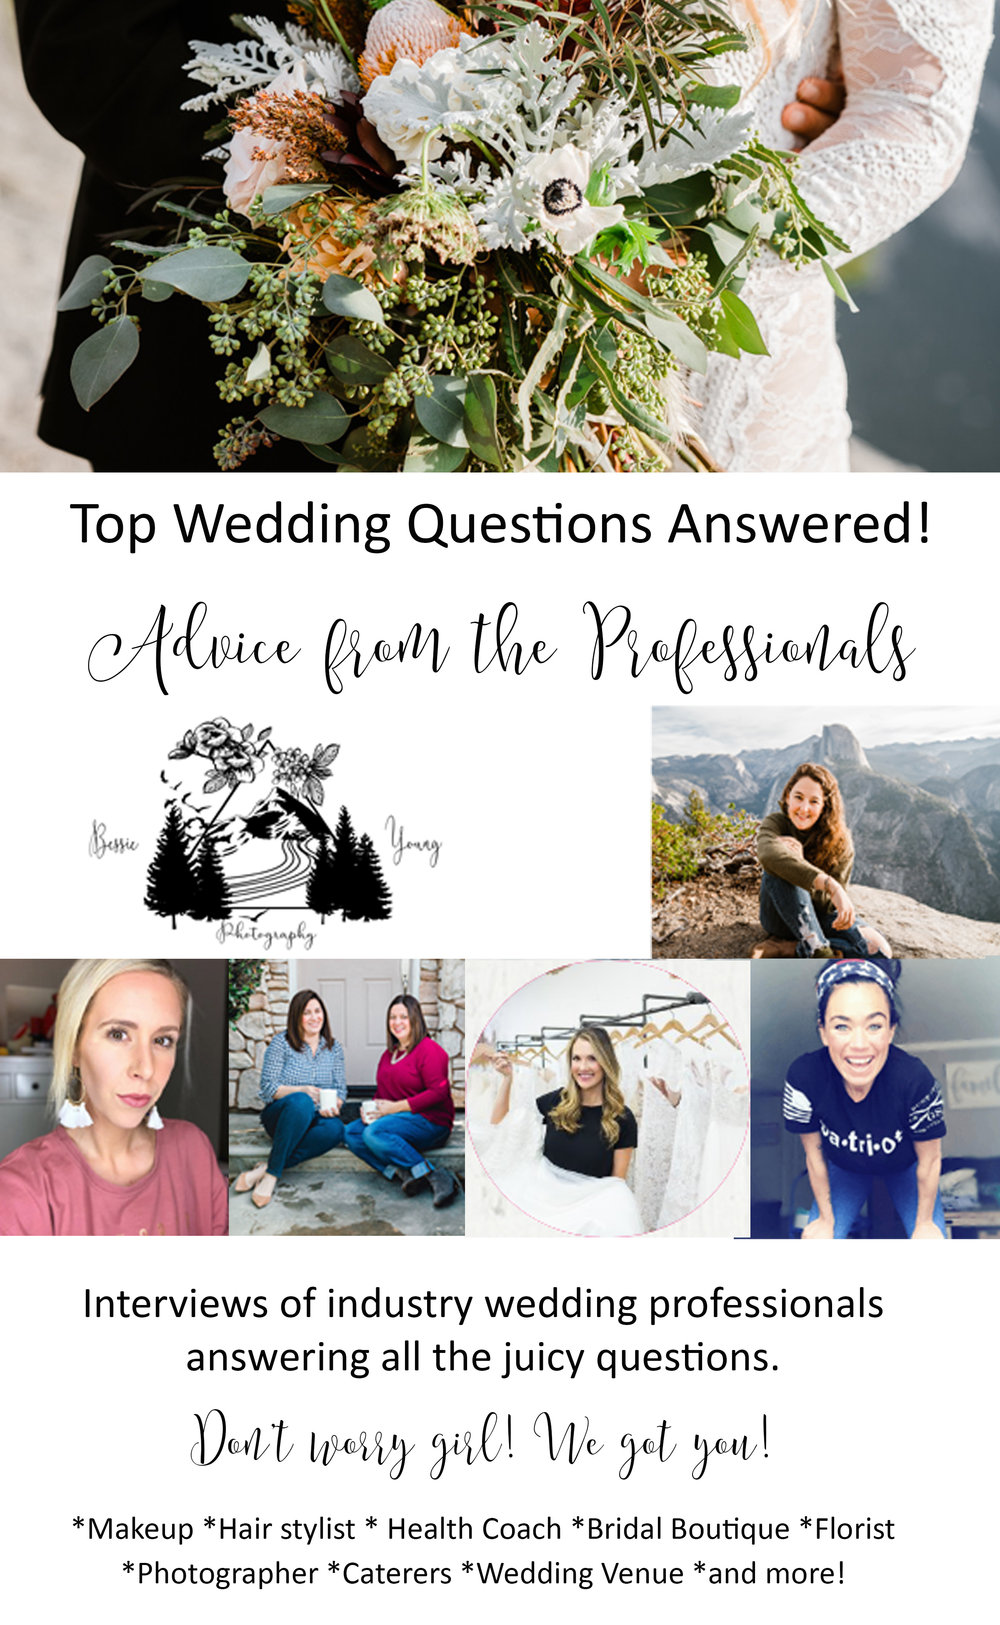 Top Wedding Questions Answered  Advice from a Professional by Bessie Young Photography.jpg